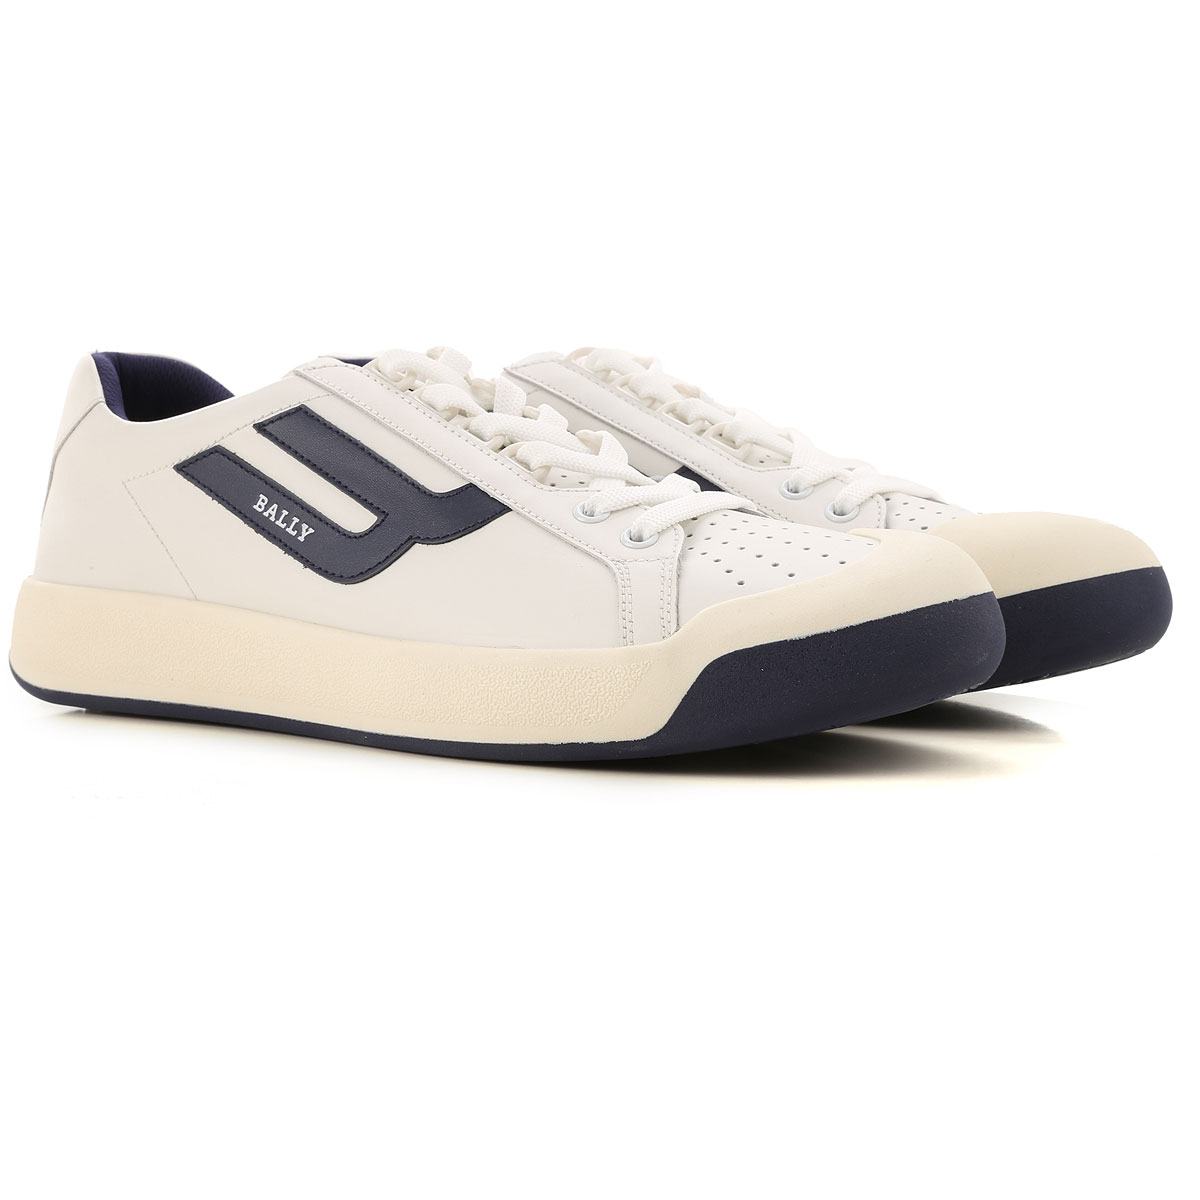 Bally Sneakers for Men On Sale, White, Leather, 2019, 6